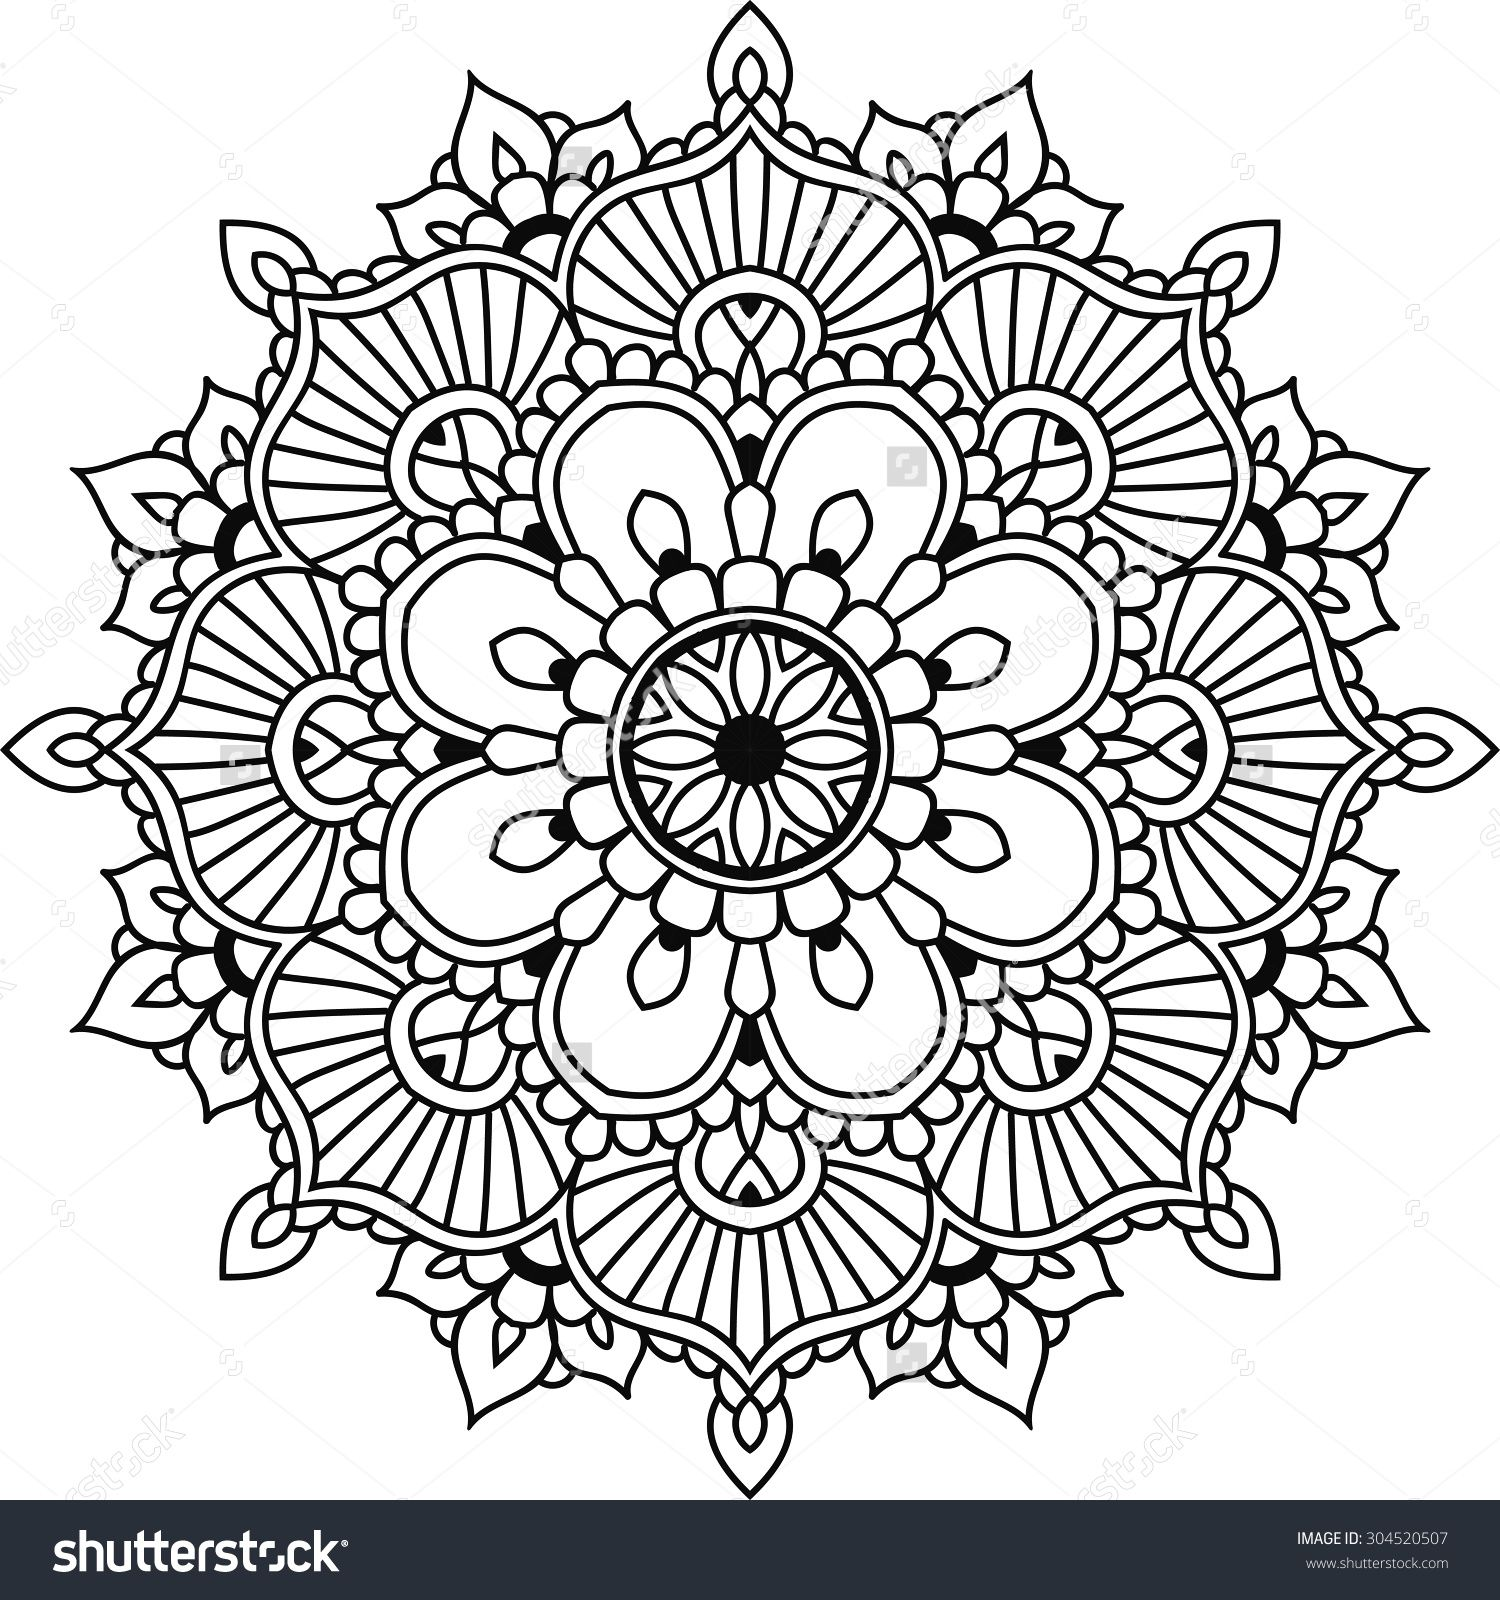 Simple Snowflake Coloring Patterns Jpg 1500x1600 Traceable